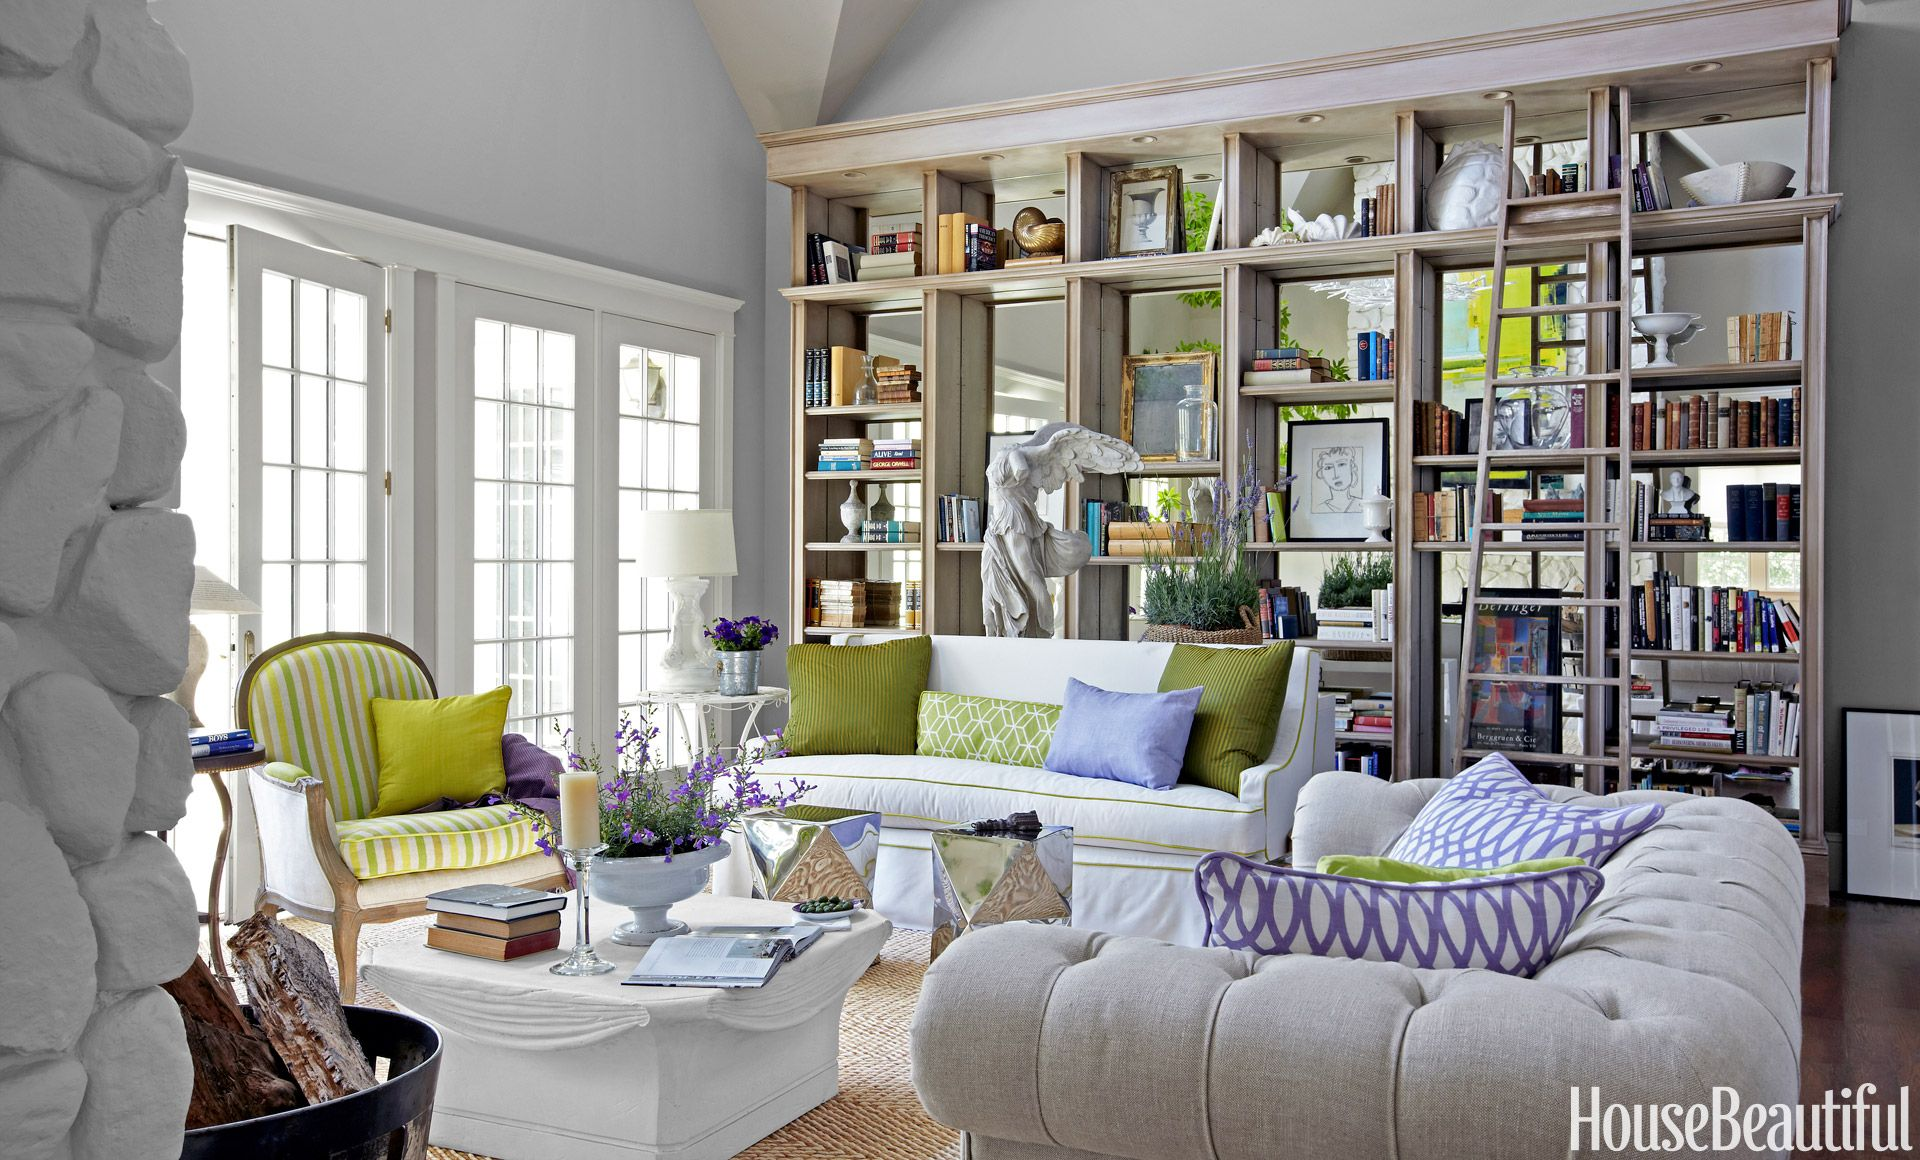 Living Room Bookshelf Decorating Ideas Beauteous Bookshelf Decorating Ideas  Unique Bookshelf Decor Ideas Design Ideas